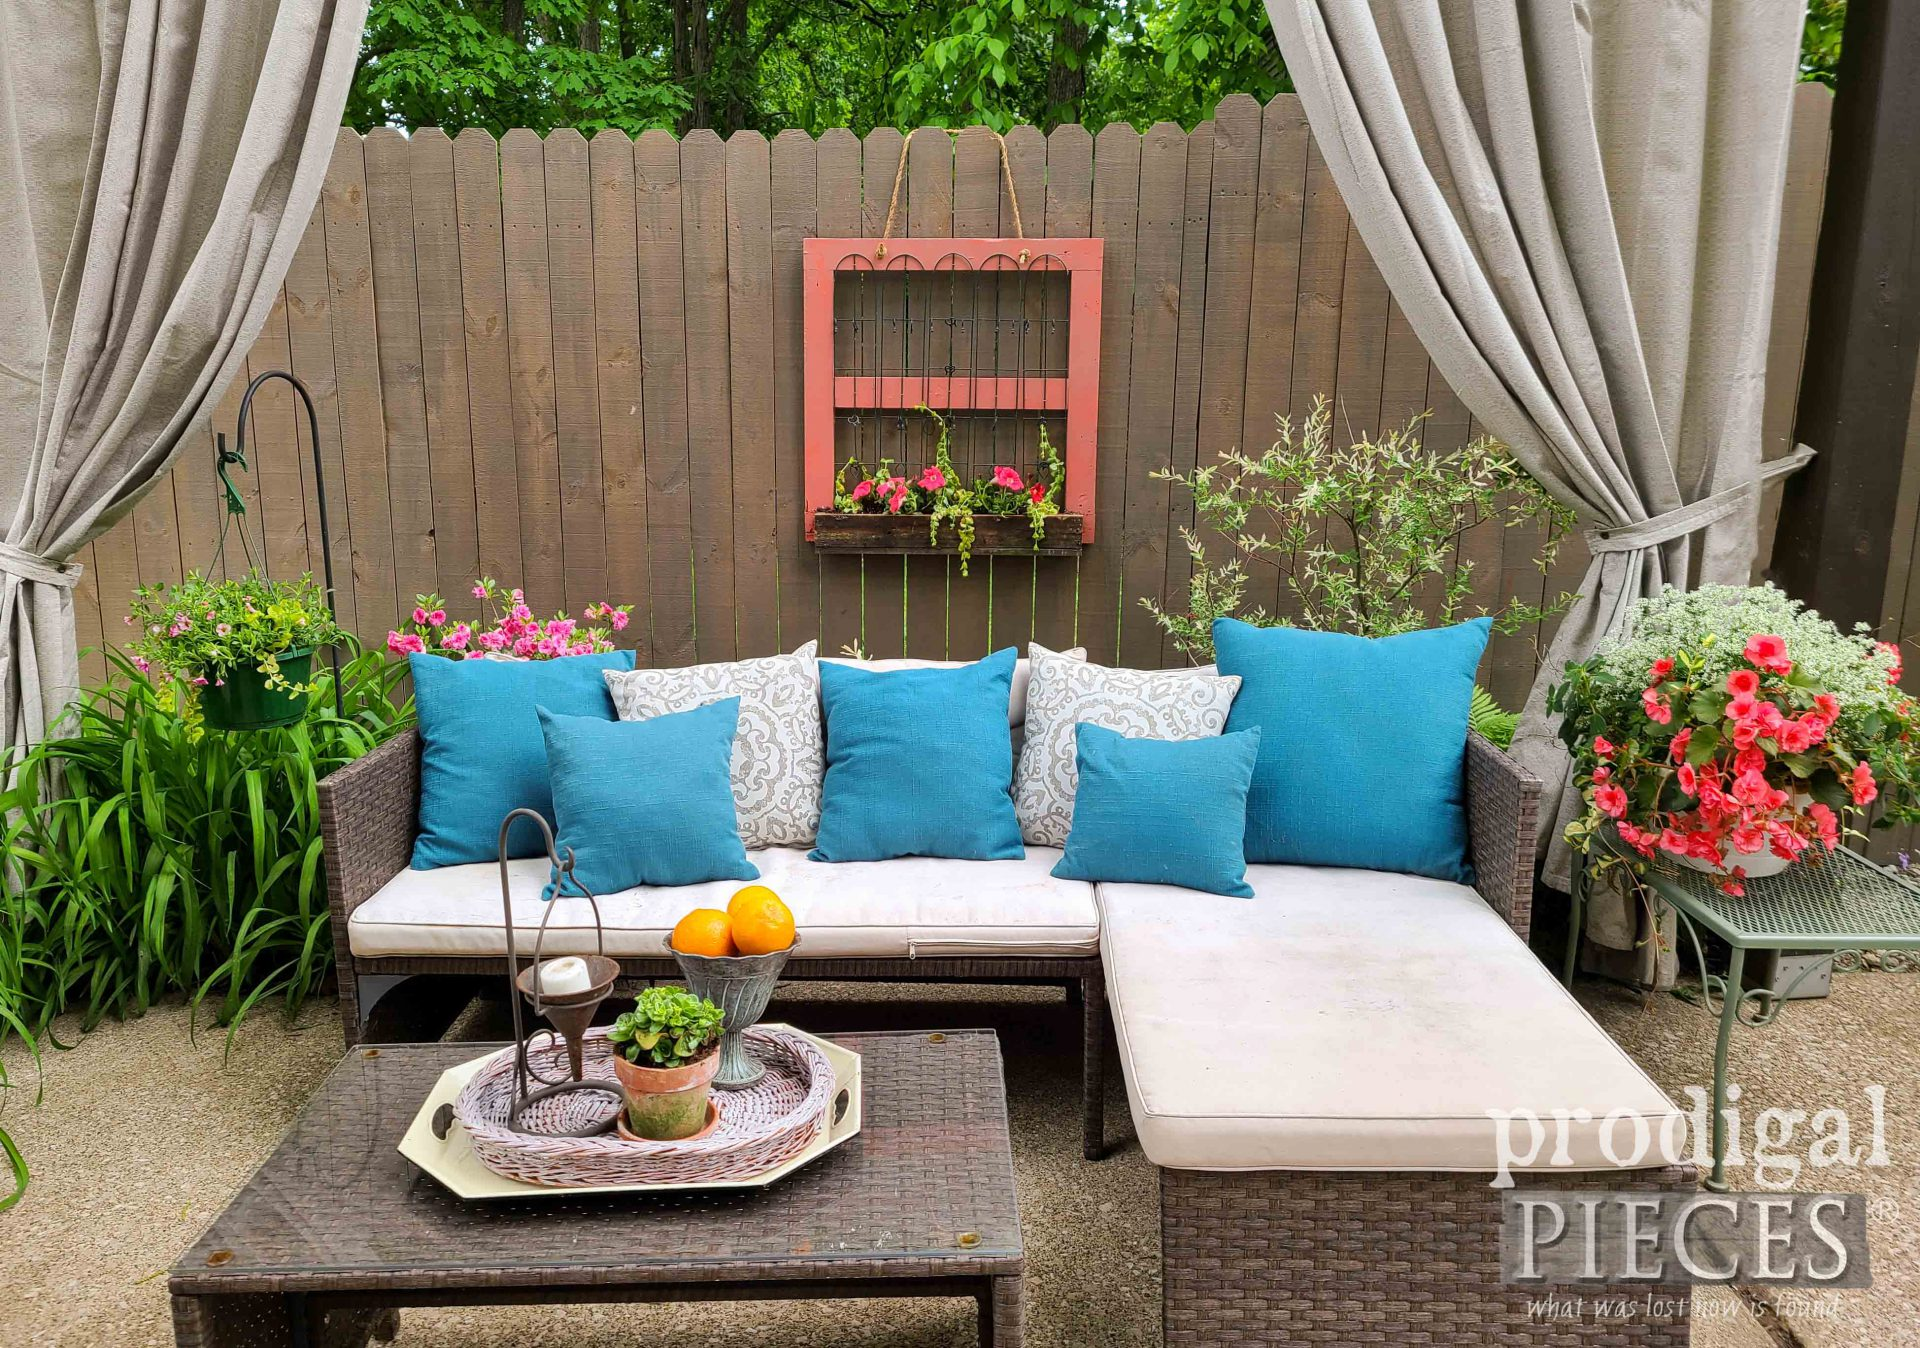 DIY Patio Decor Using Reclaimed Wood for Hanging Fence Planter by Larissa of Prodigal Pieces | prodigalpieces.com #prodigalpieces #diy #home #patio #farmhouse #garden